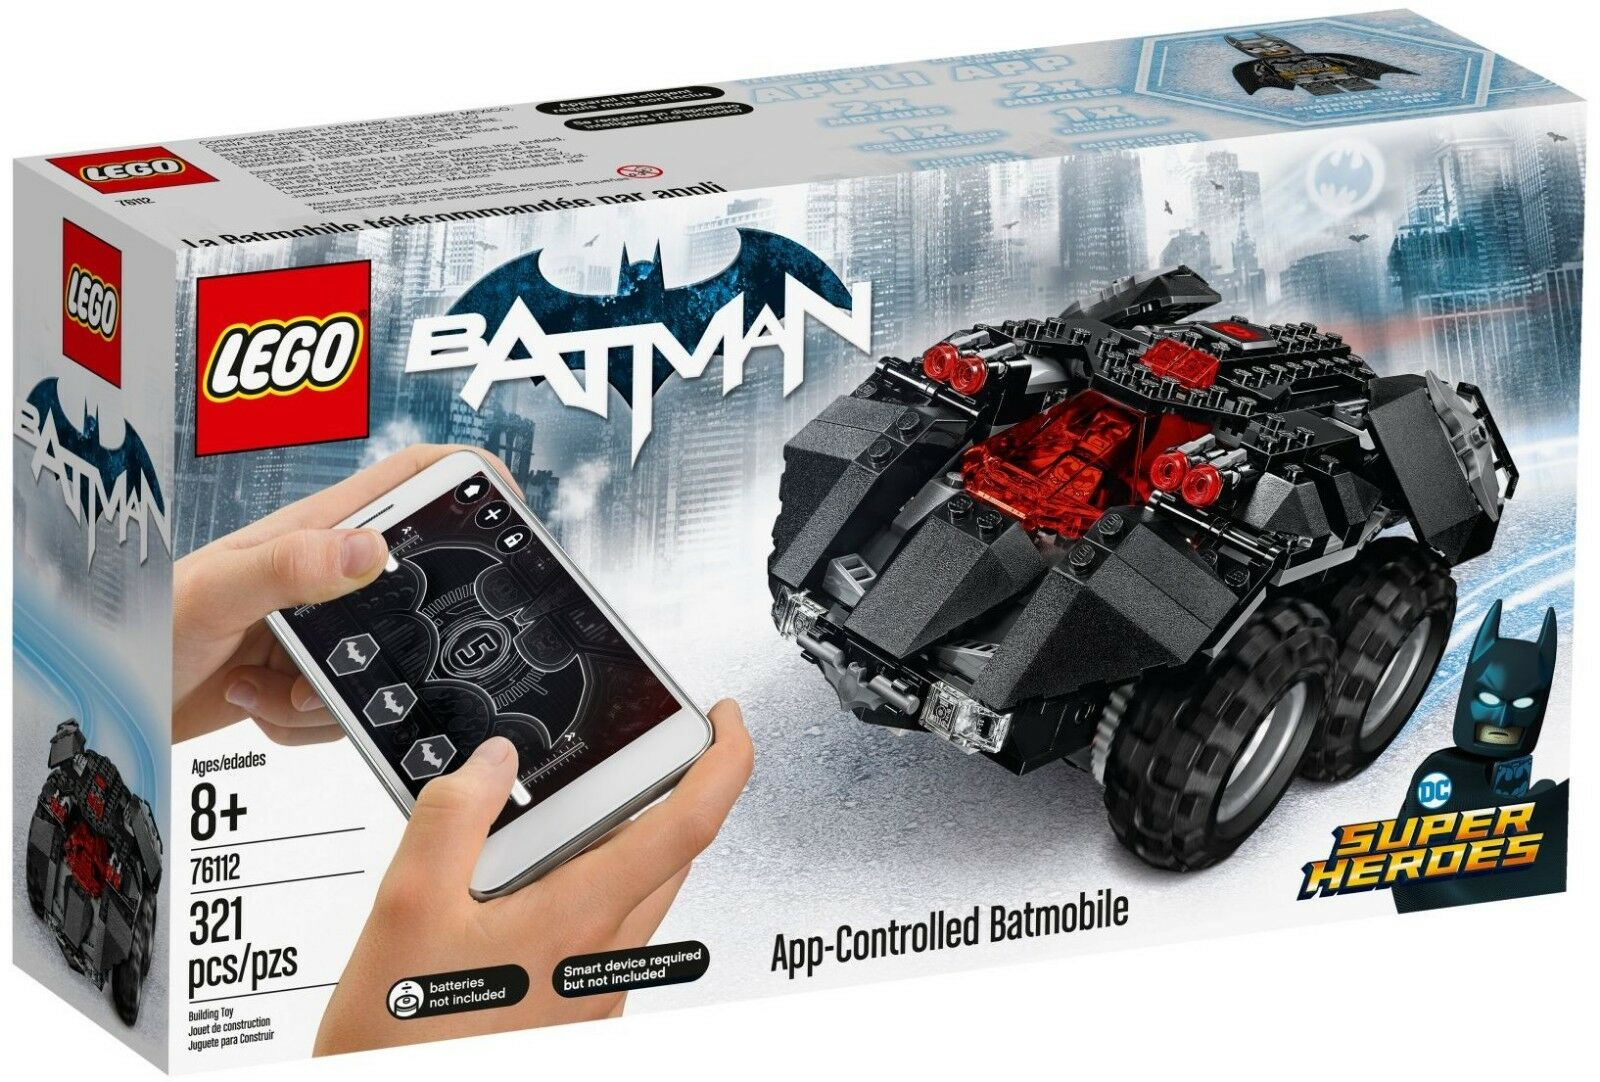 LEGO 76112 App-Contolled Batmobile BATMAN Super Heroes 8+ Pz 321